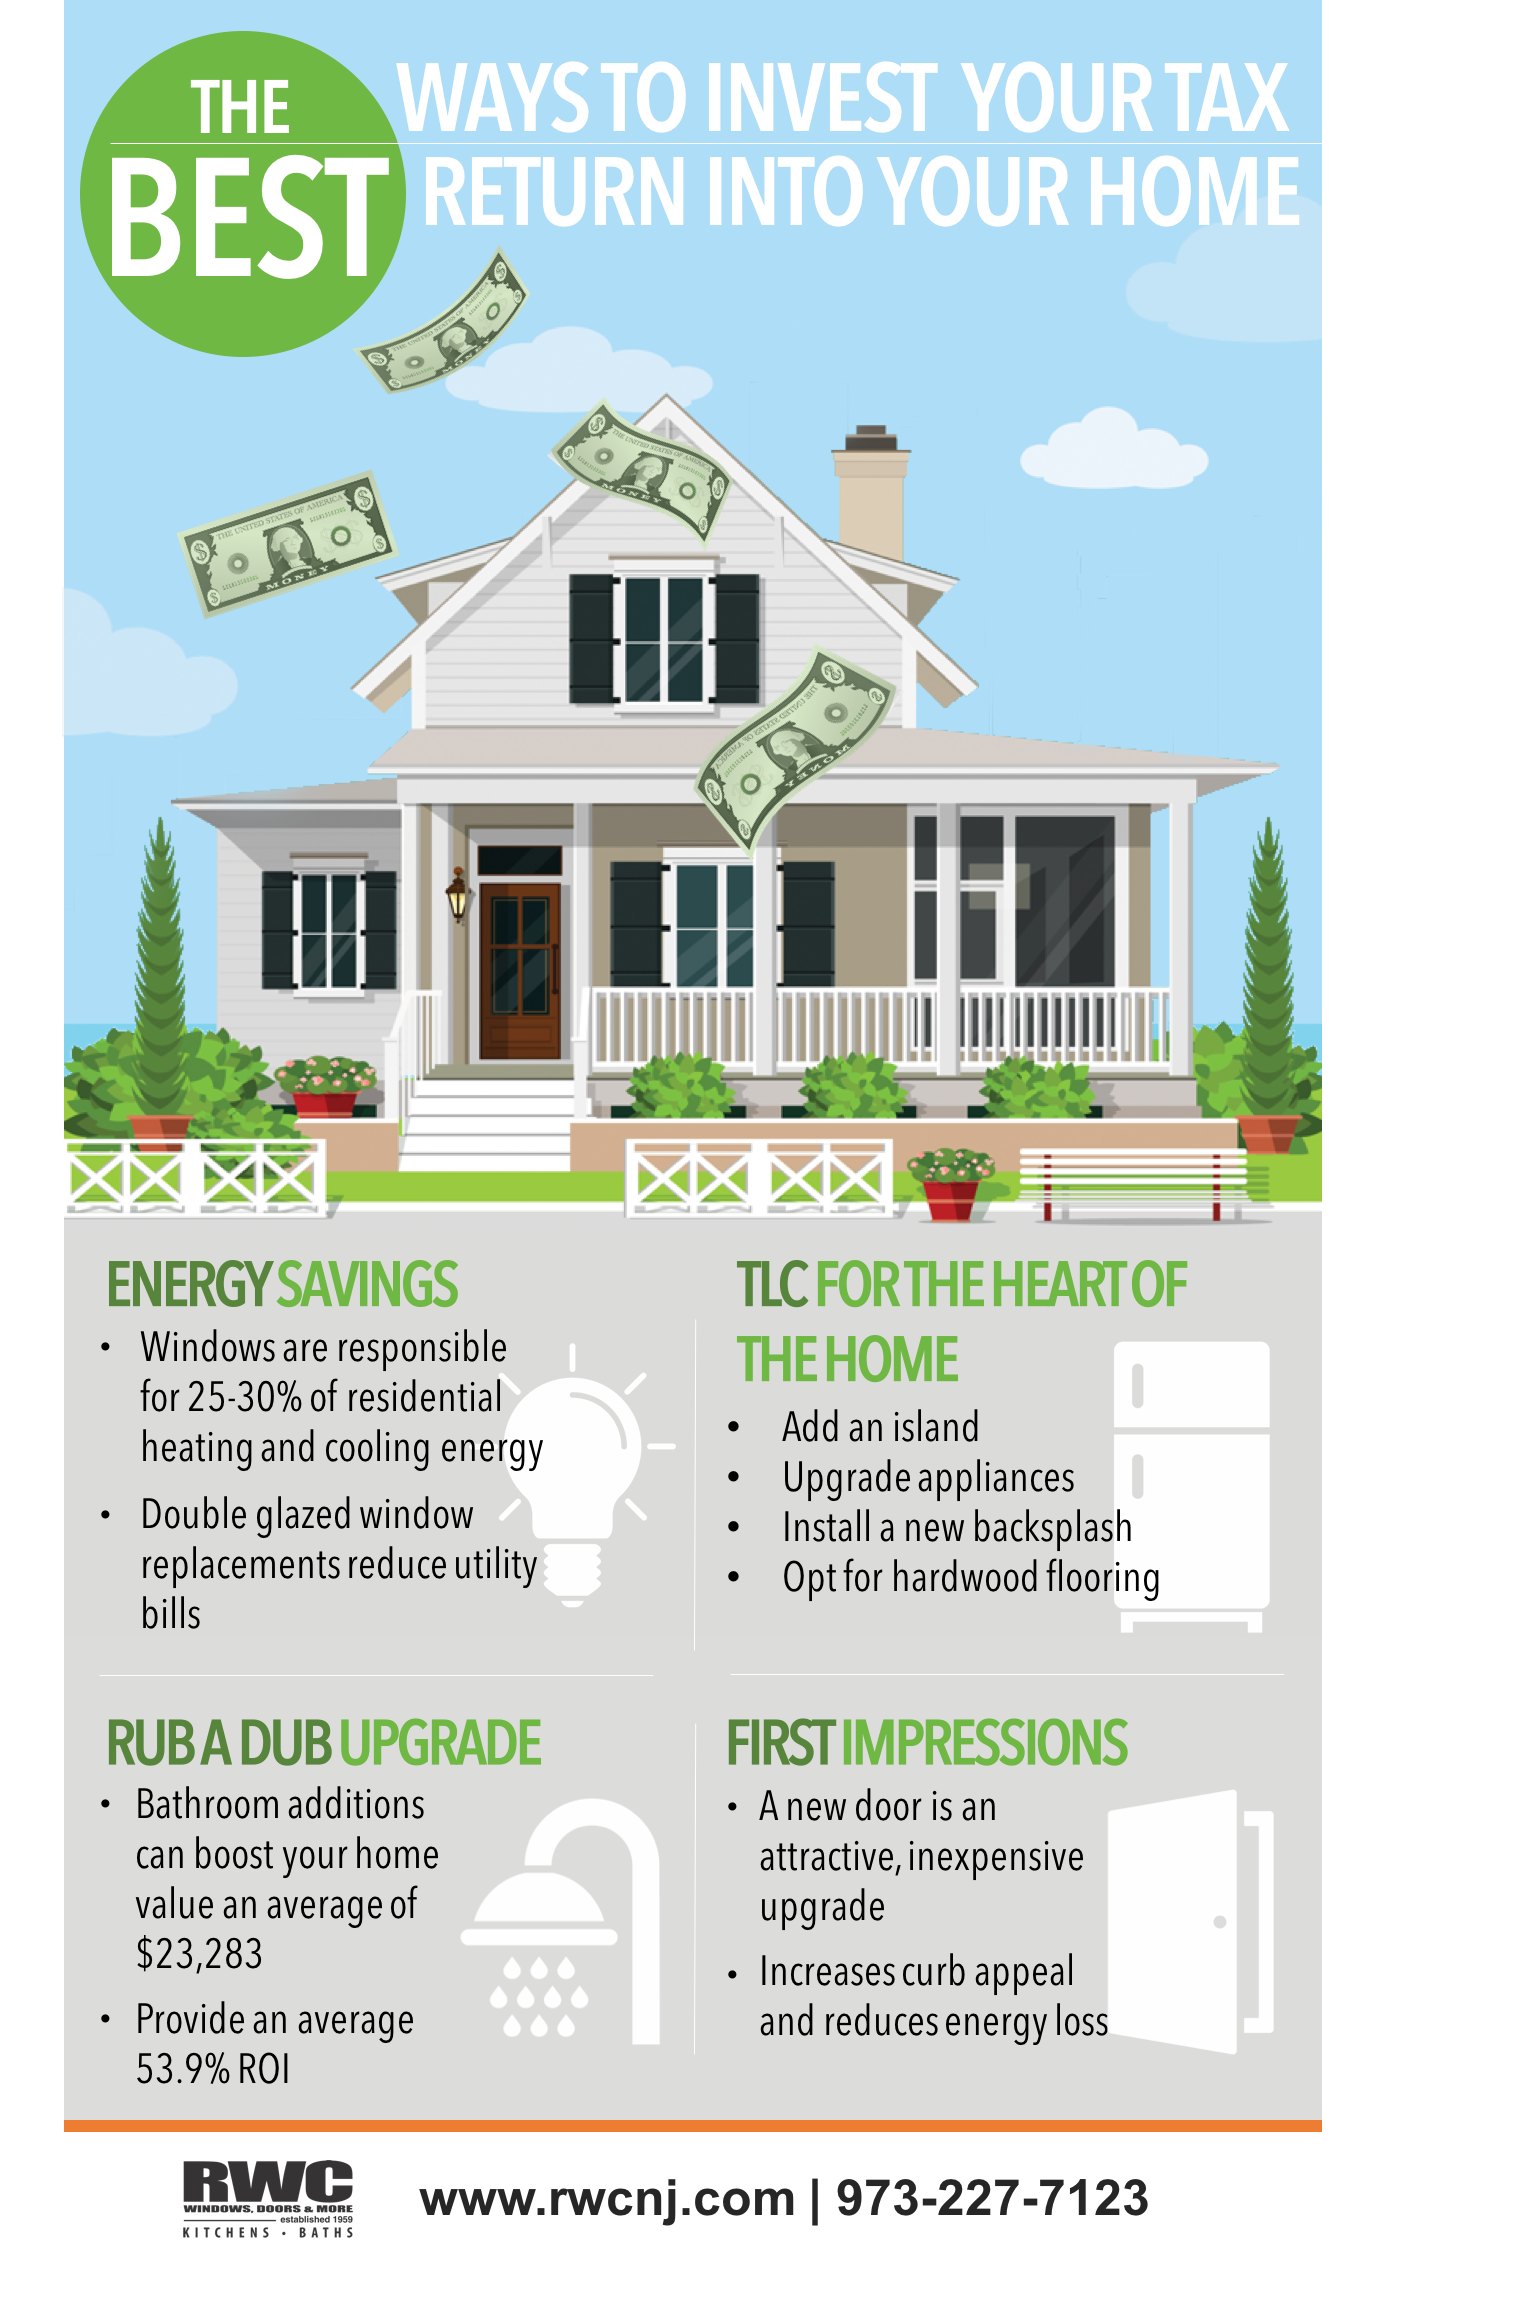 The Best Ways To Invest Your Tax Return Into Your Home Infographic Rwc Best Way To Invest Investing Bathroom Addition